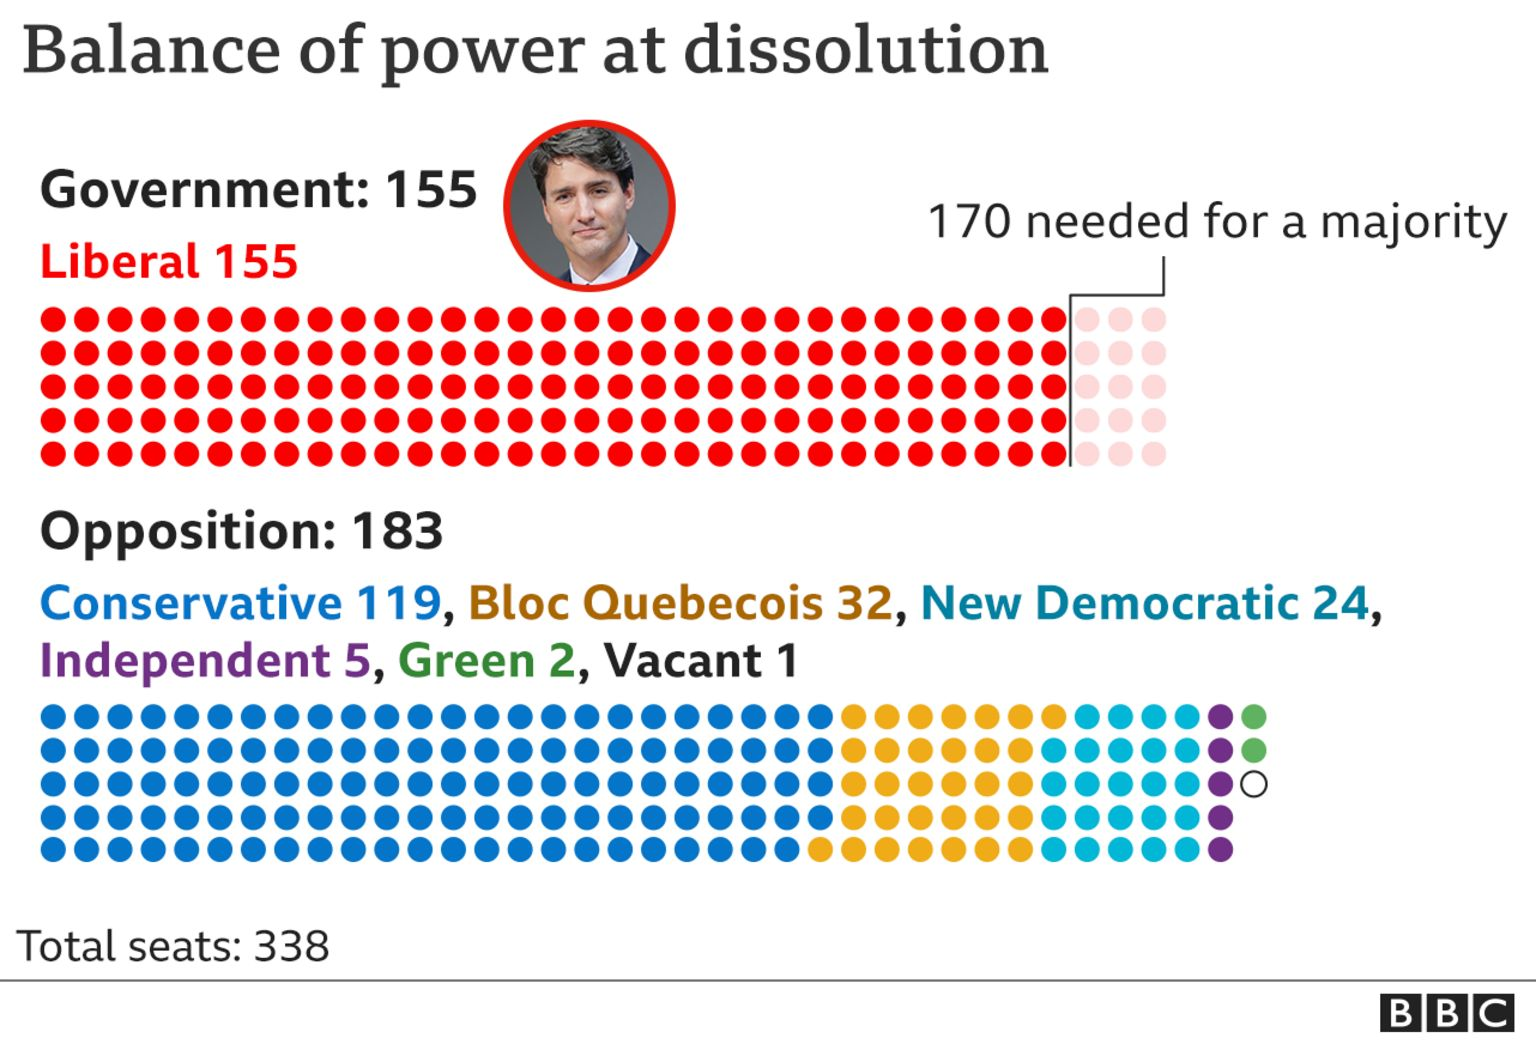 Graphic showing the balance of power in Canada's House of Commons at dissolution